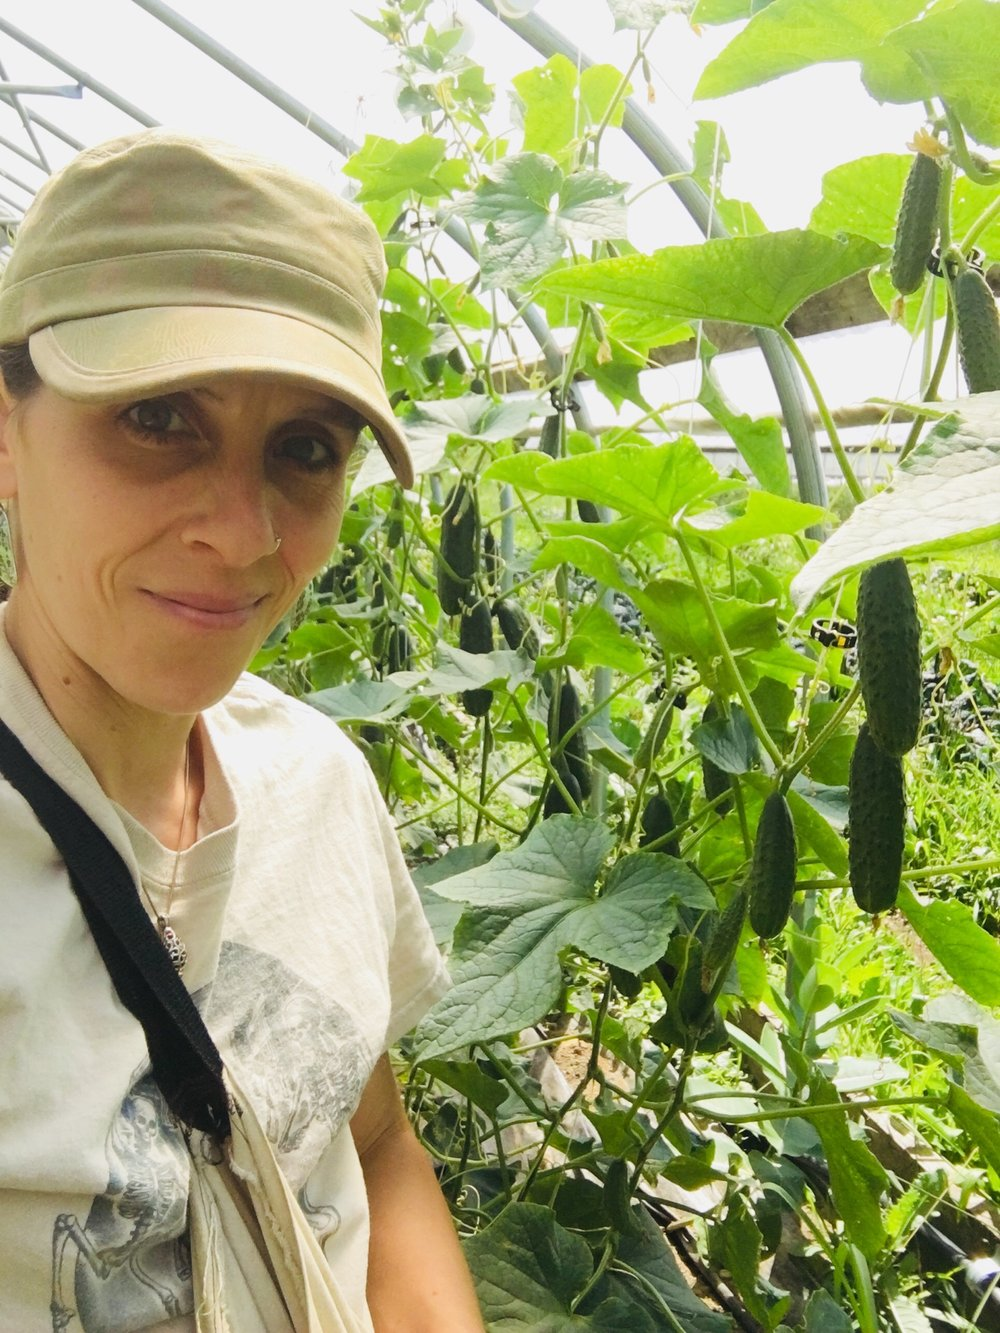 Taylor harvesting cukes, selfie by Taylor Morneau